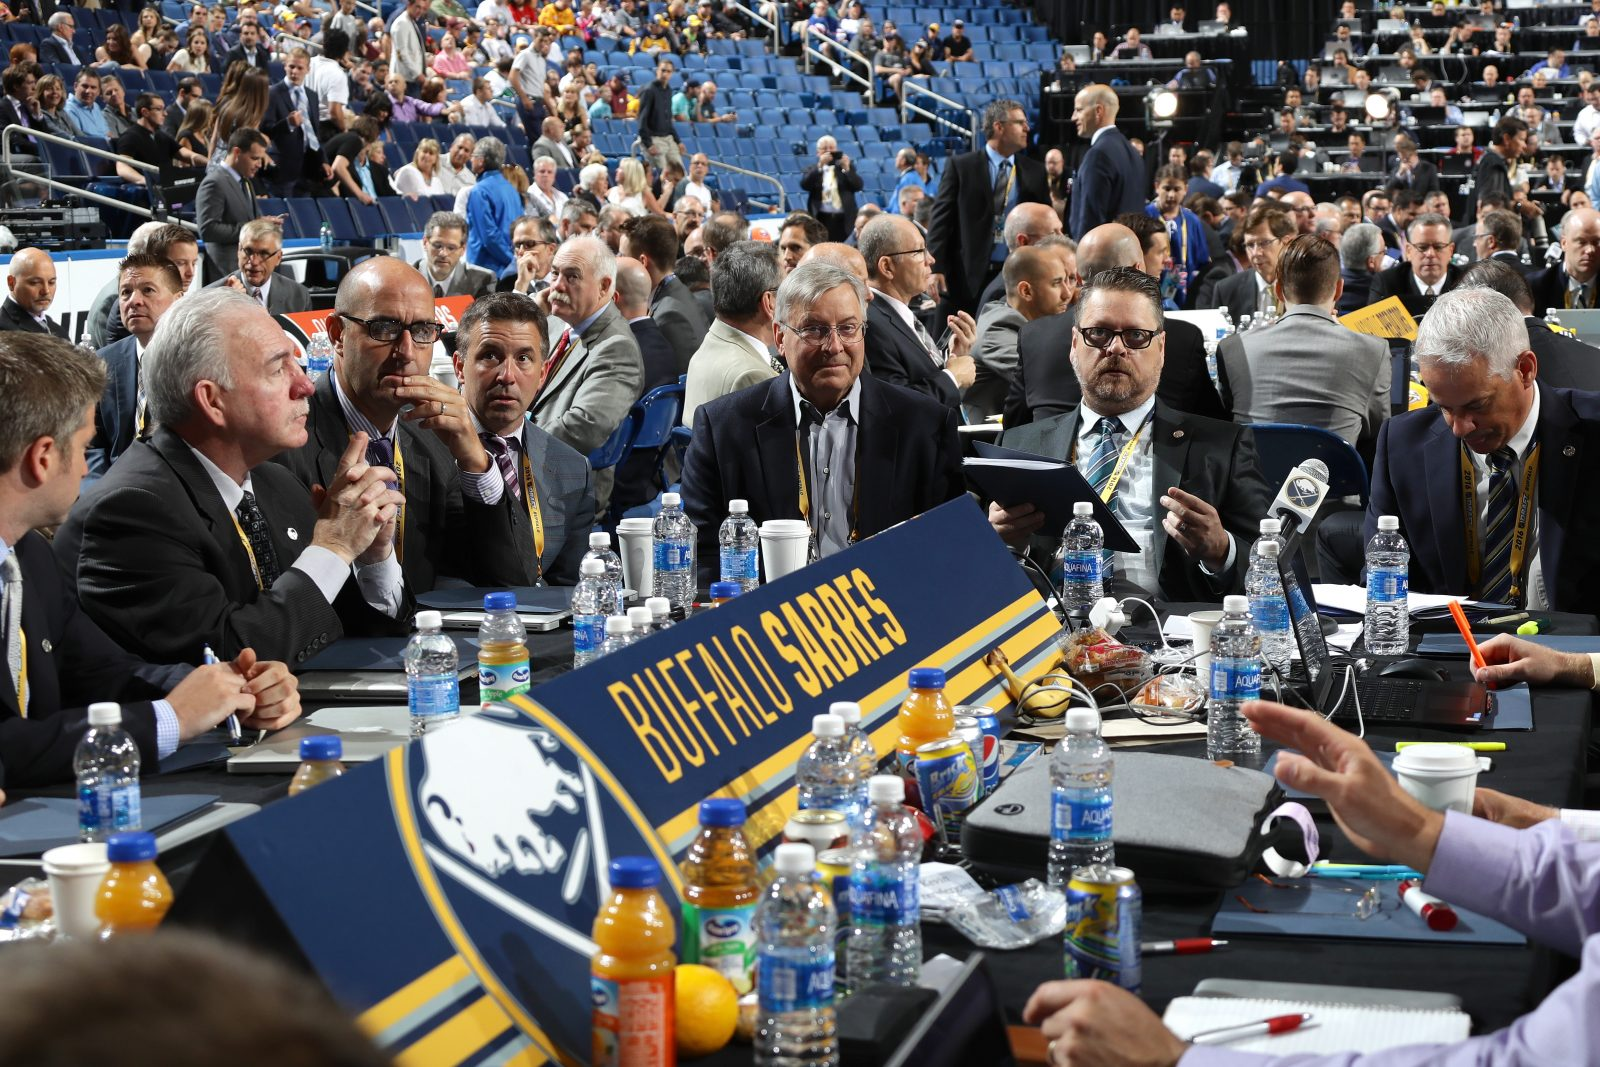 Kevin Devine and Jerry Forton, seated to the left of Pegula Sports and Entertainment President Russ Brandon and Sabres owner Terry Pegula, are among those who will help run things after the firings of GM Tim Murray and amateur scouting head Greg Royce, both seated to the right of Pegula.  (Getty Images)